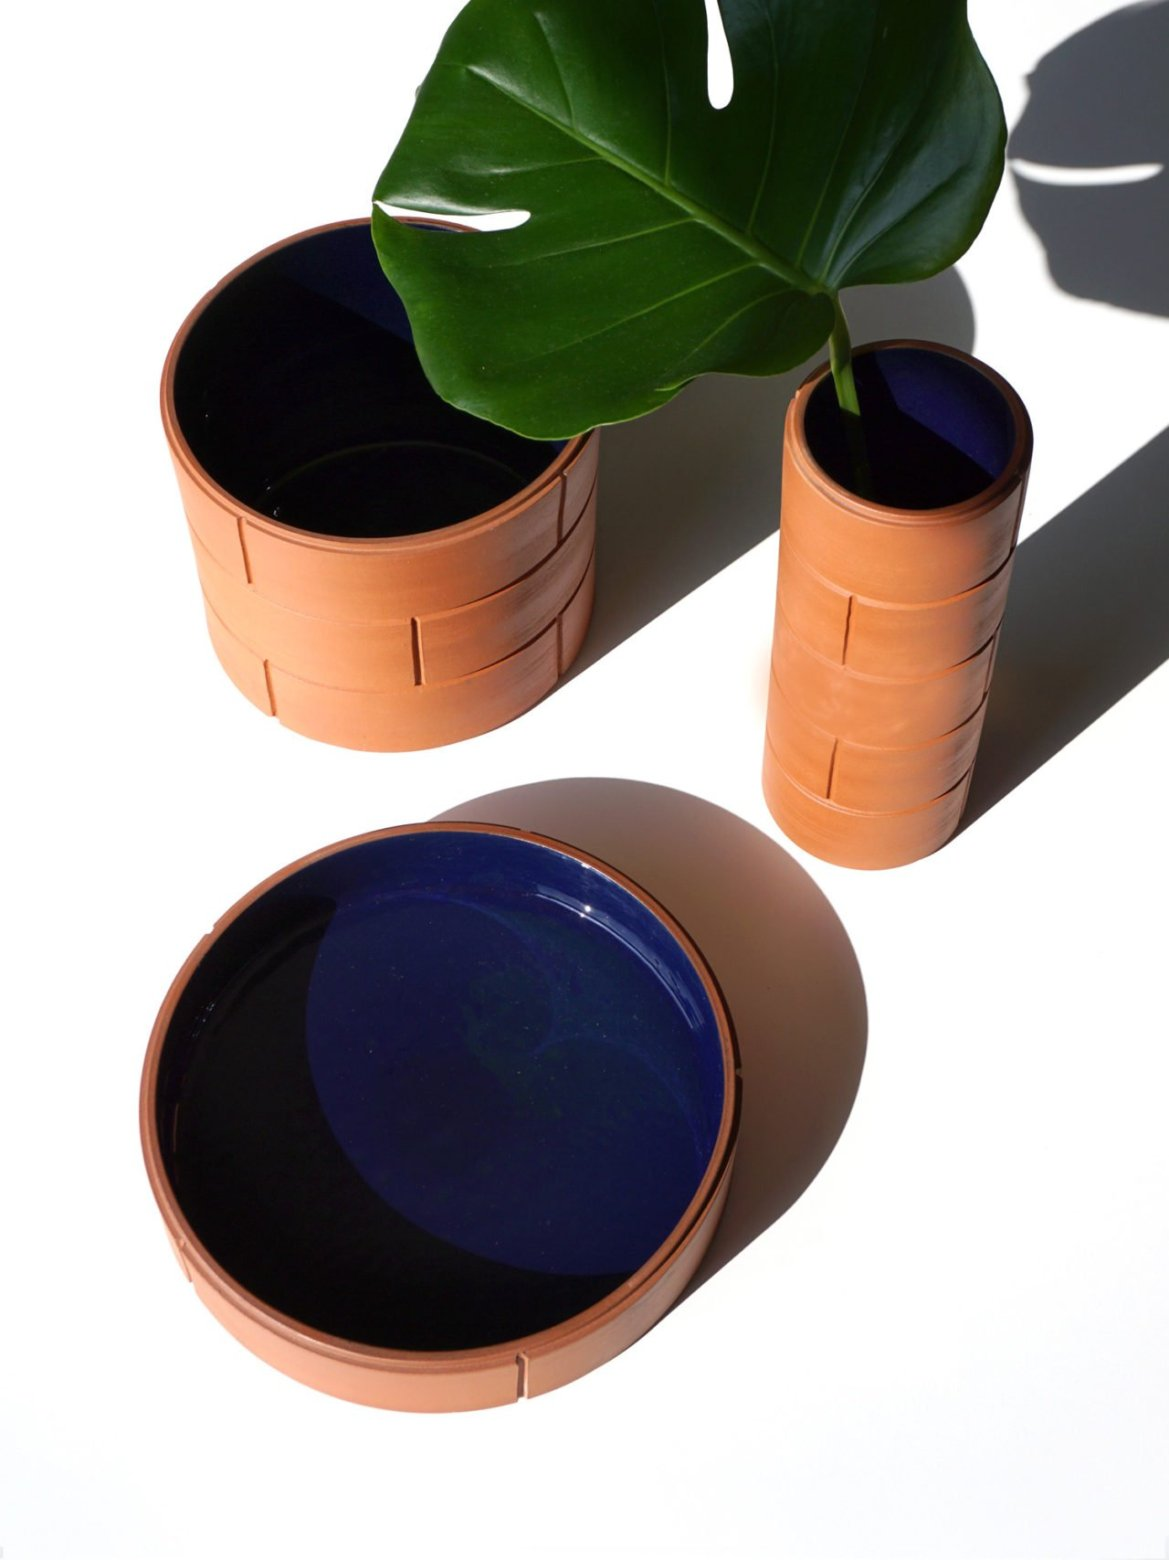 A collection of contemporary ceramic products inspired by modern architecture, designed by Murmull.